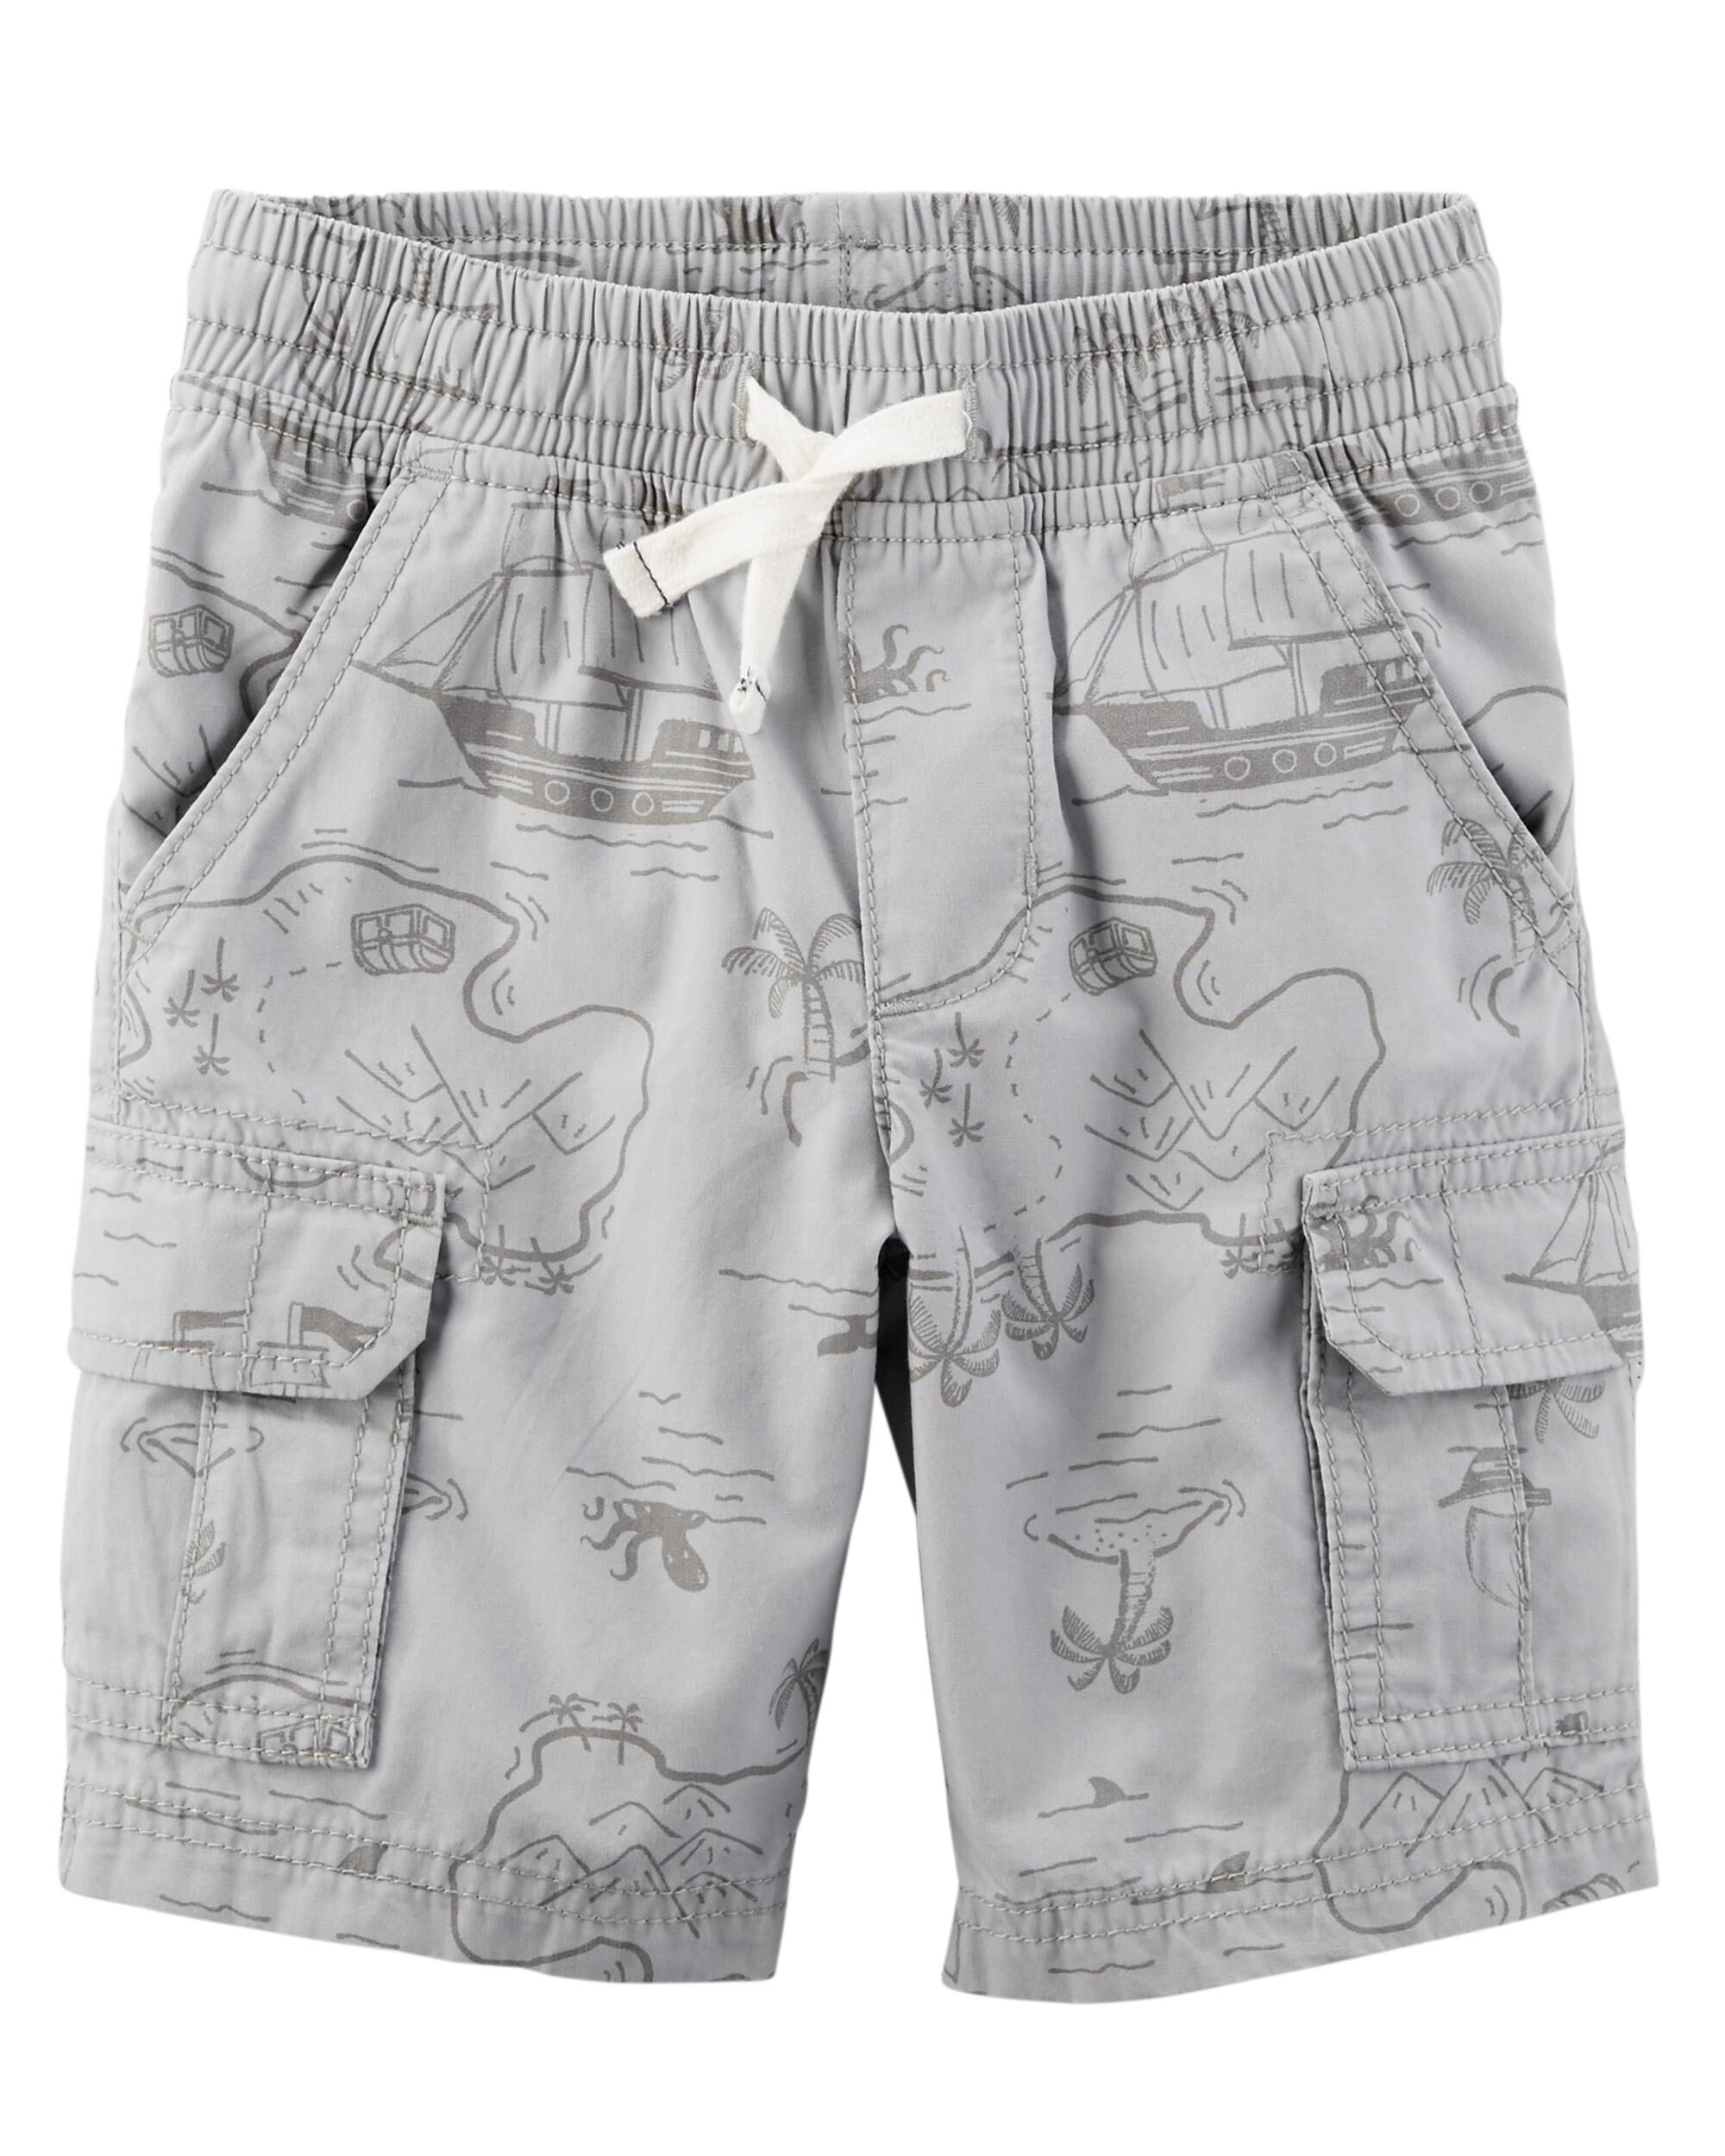 ee22b691e Easy Pull-On Cargo Shorts | Carters.com